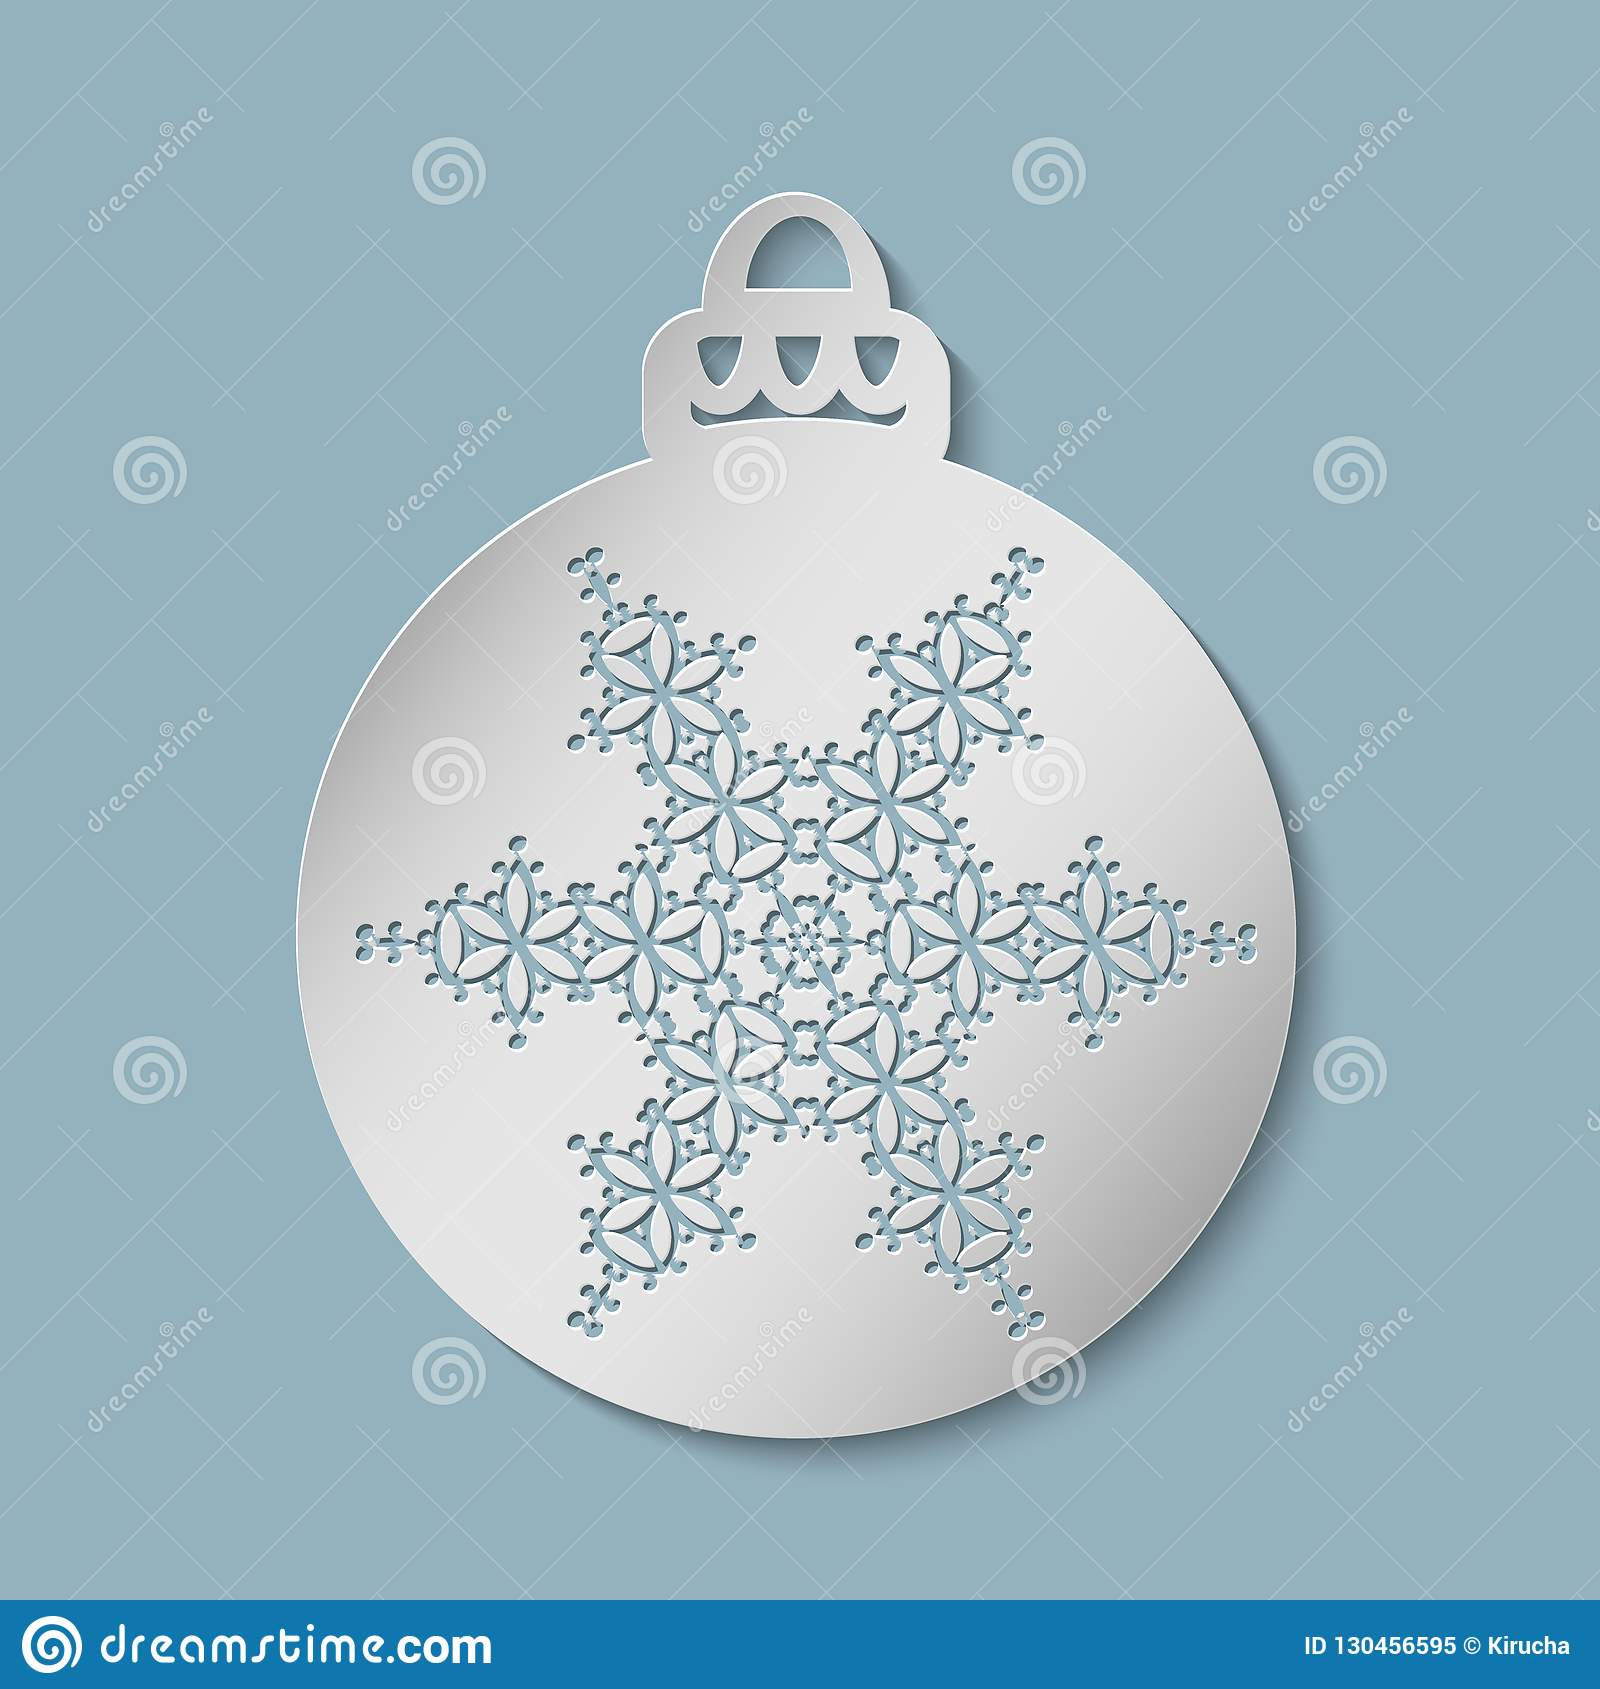 Christmas Festive Ball Cut Out Of Paper Stock Illustration